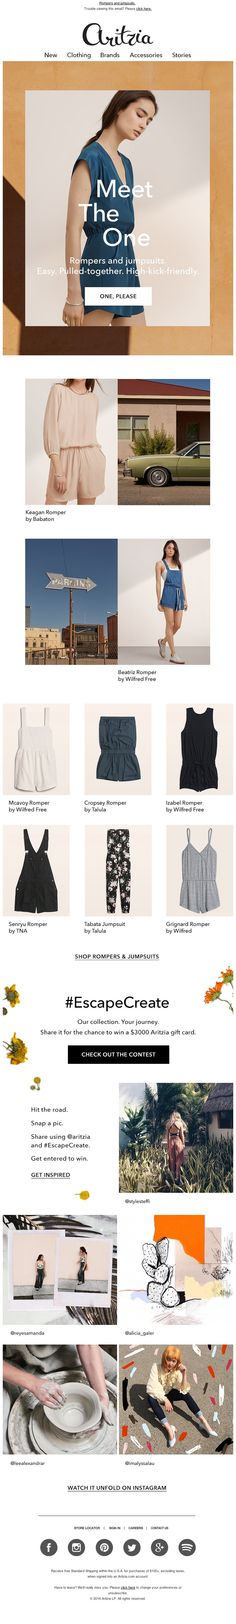 Aritzia - What to wear when you don't know what to wear